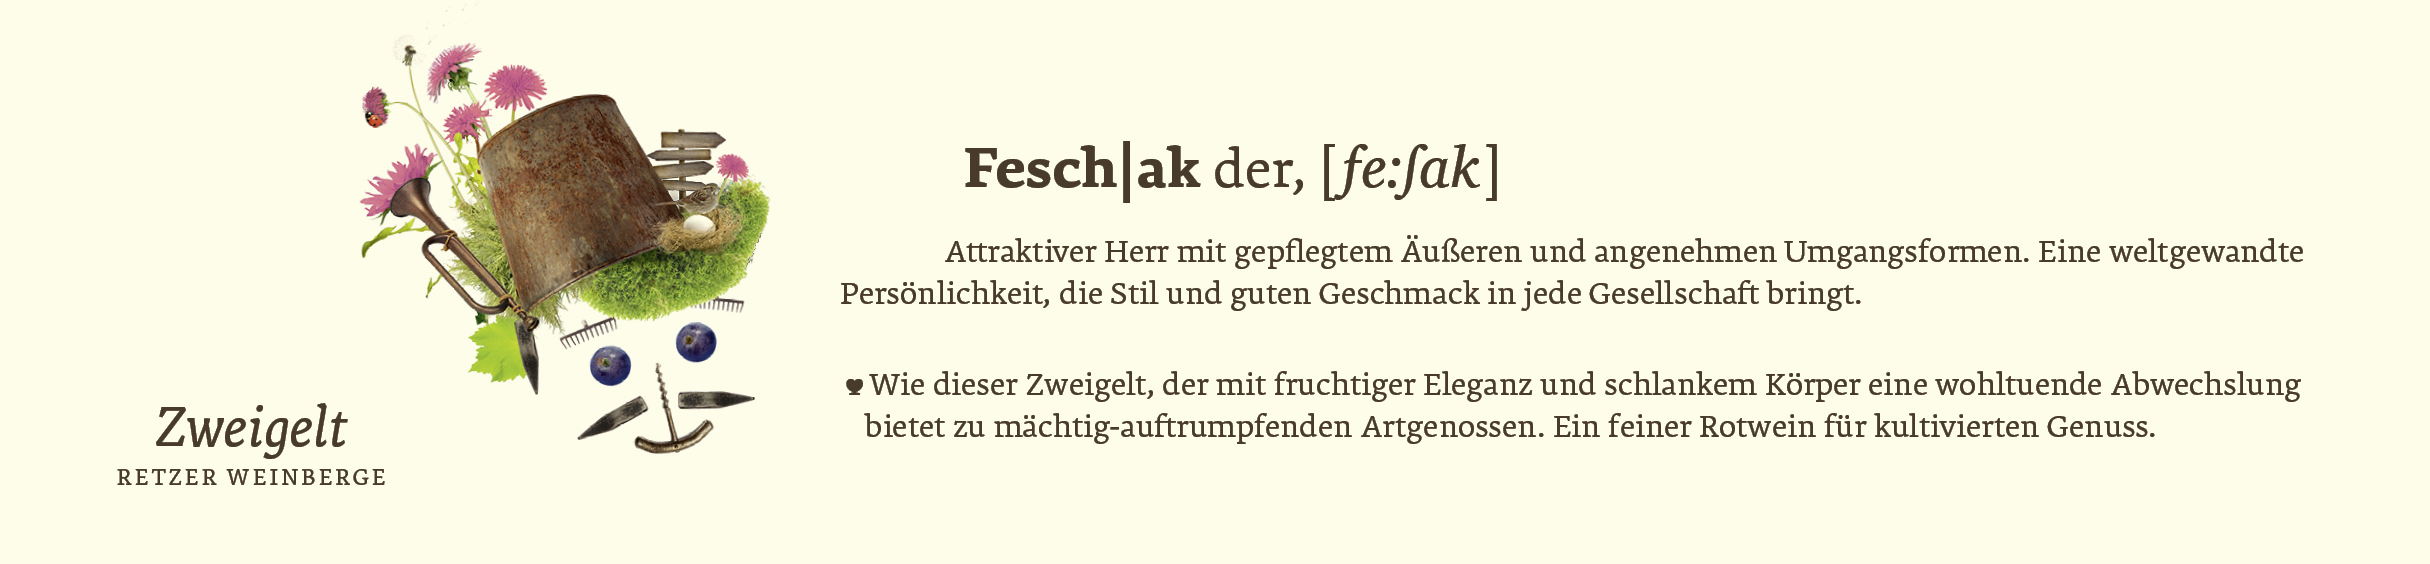 slide_feschak